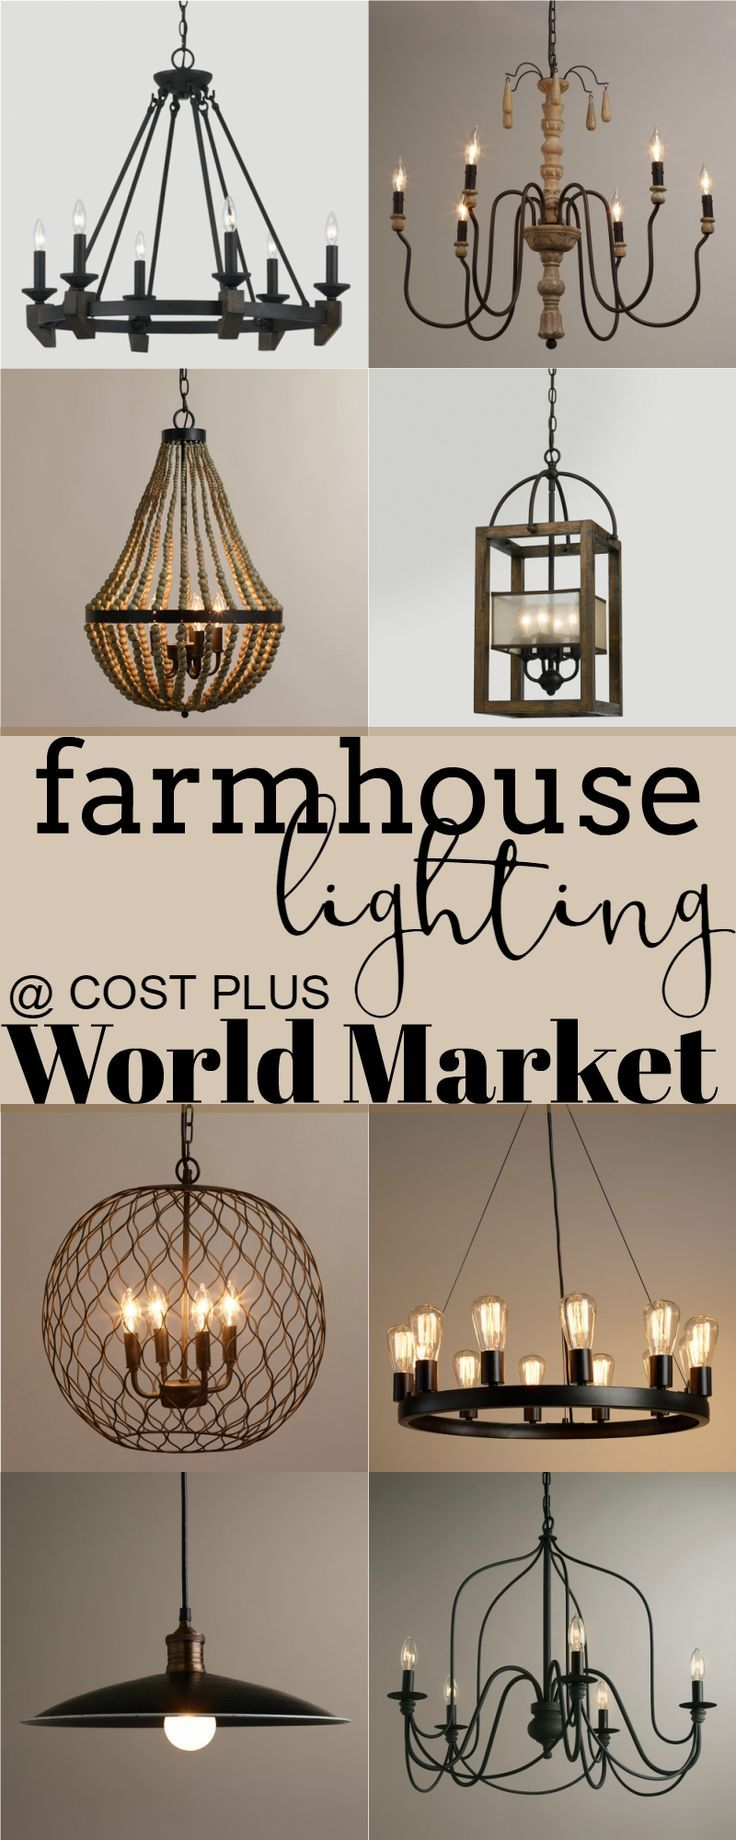 best 25 world market outdoor furniture ideas on pinterest patio farmhouse lighting at cost plus world market updated